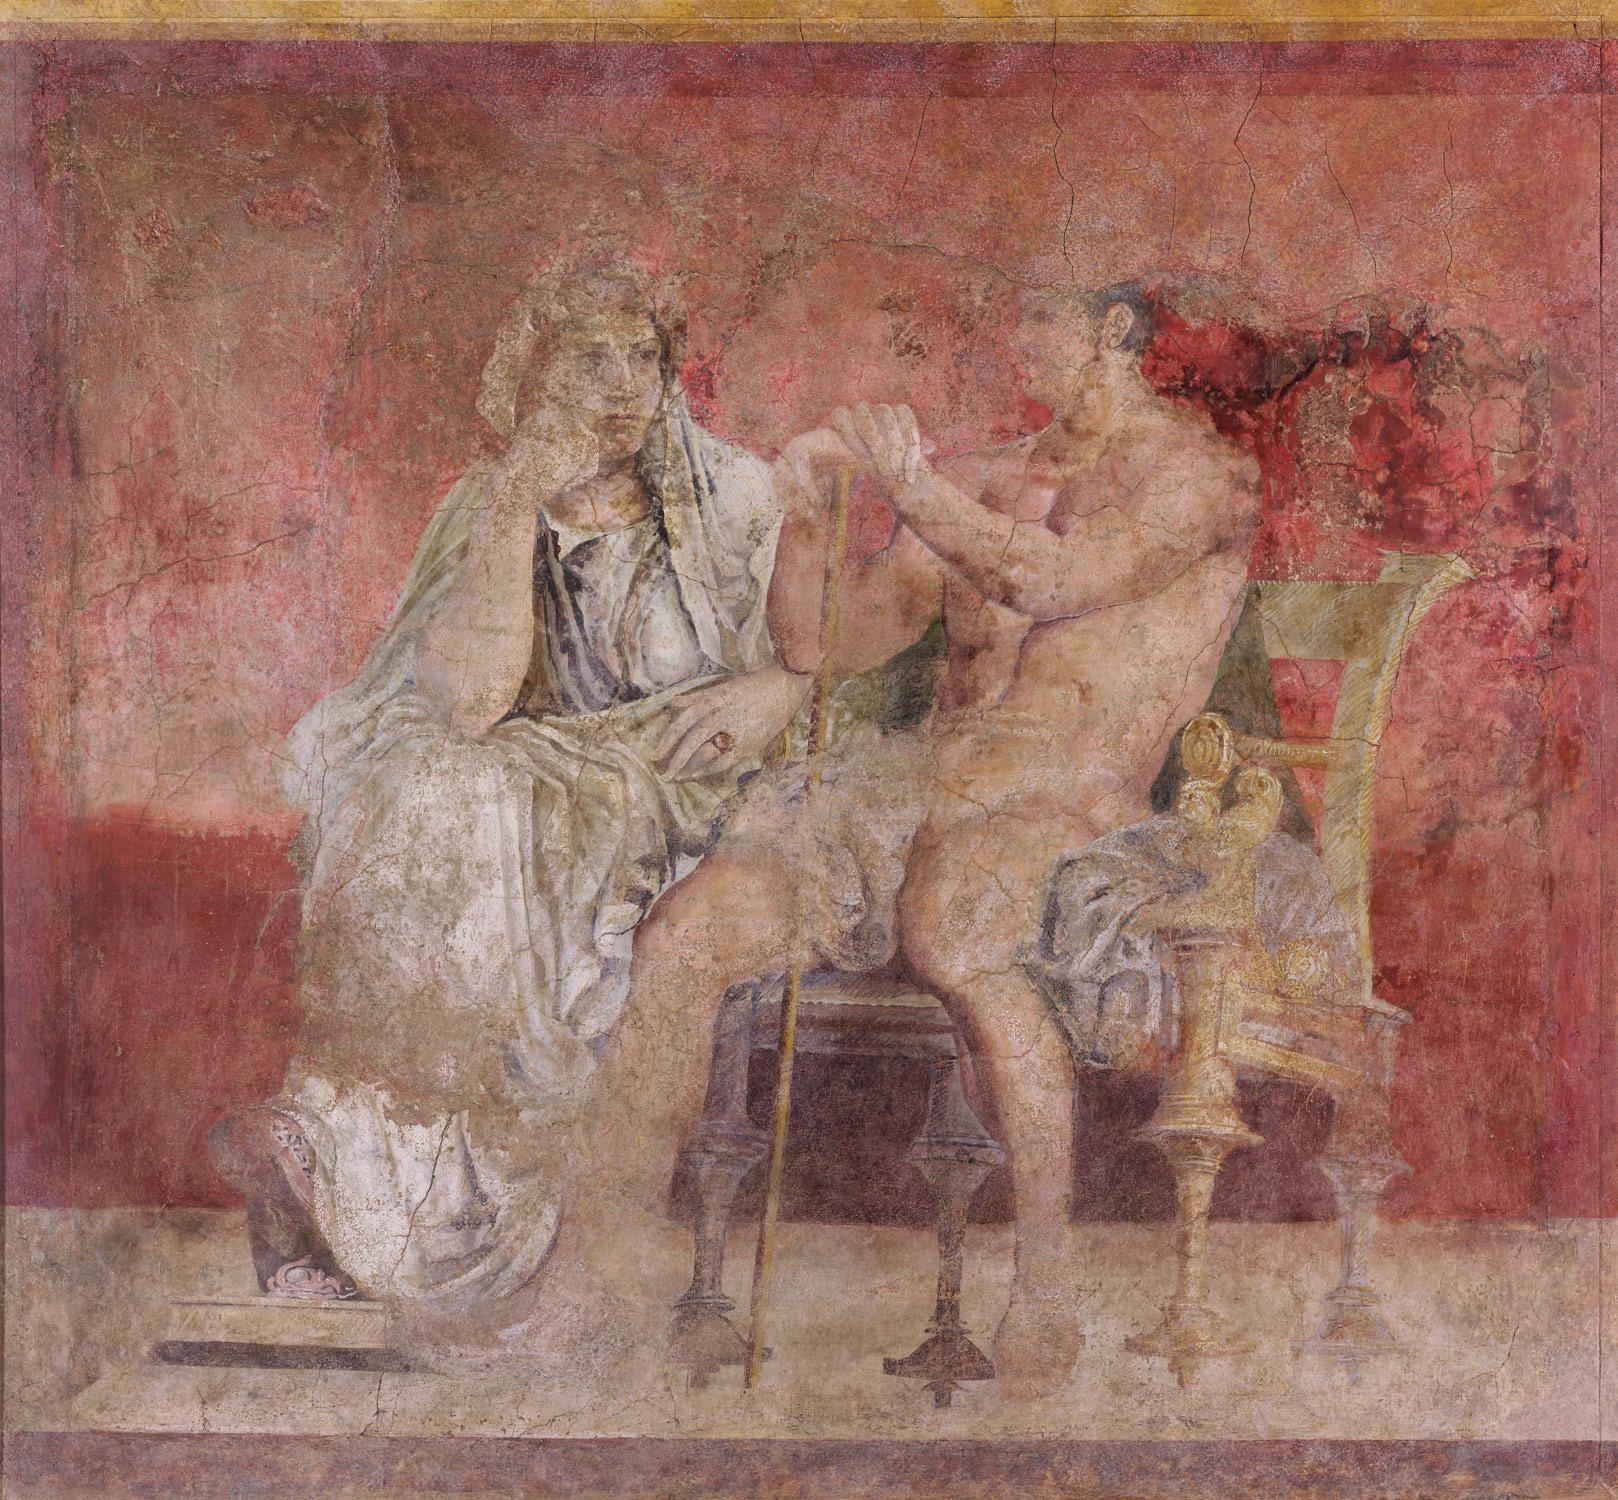 Wall Painting From Room H Of The Villa Of P (Image 20 of 20)